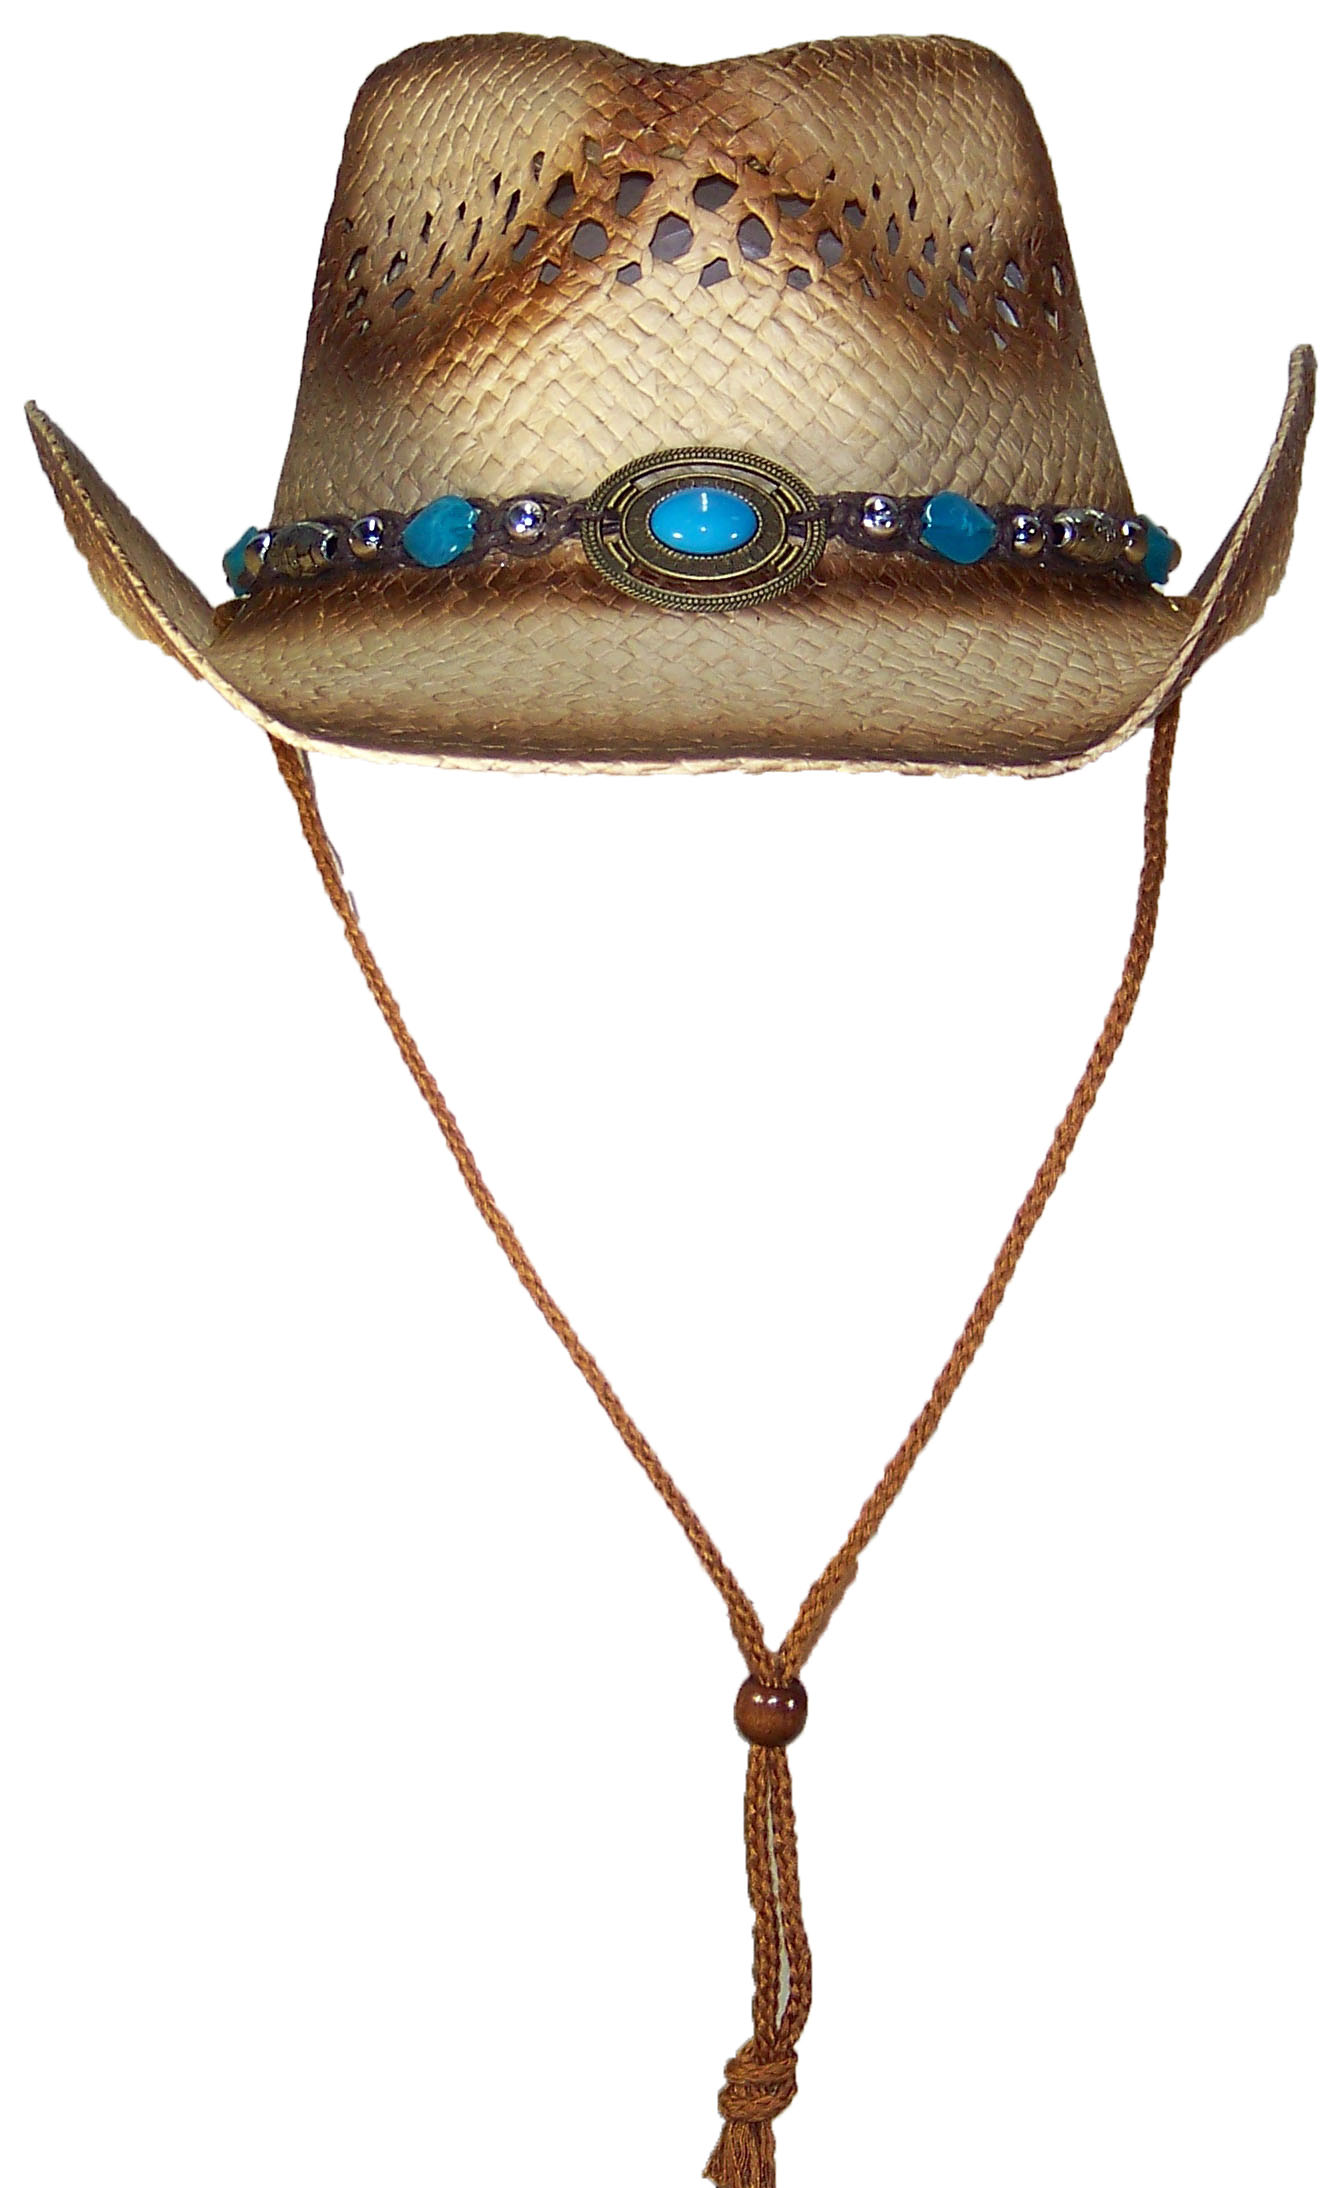 30aee296575 Tropic Hats Little Kids Paper Straw Cowboy Cowgirl W Band   Buckle